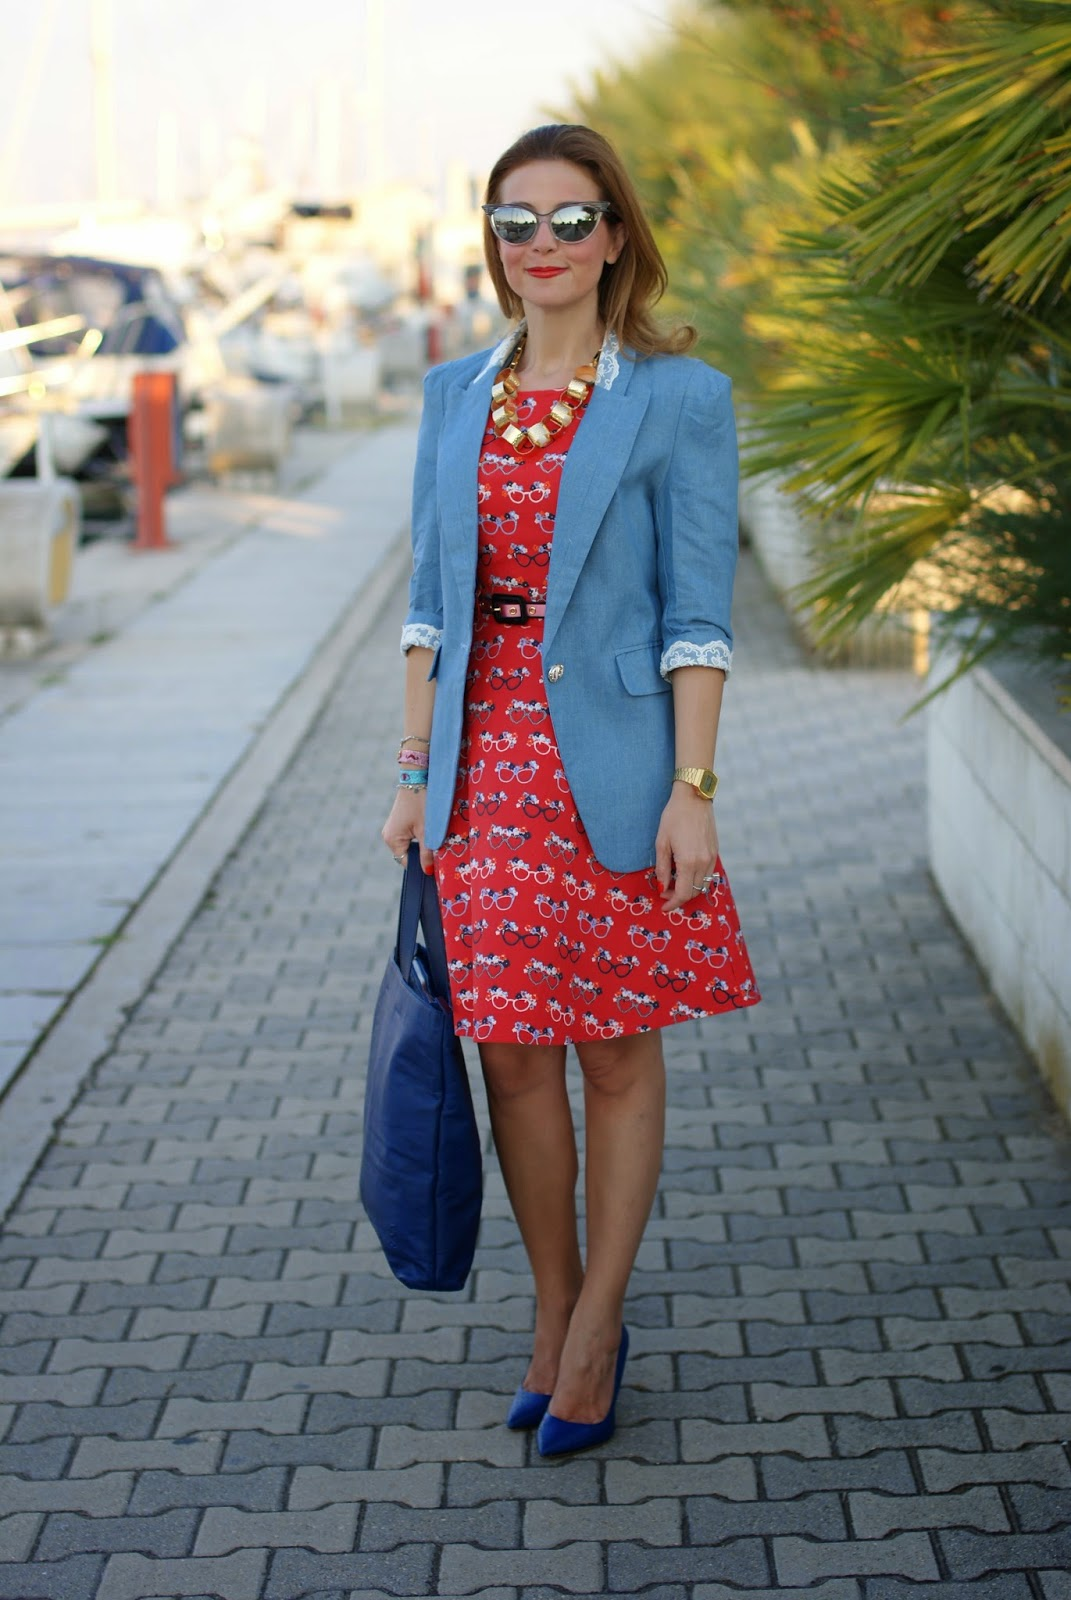 Blackfive denim blazer, nava design shopper bag, sergio levantesi shoes, Fashion and Cookies, fashion blogger